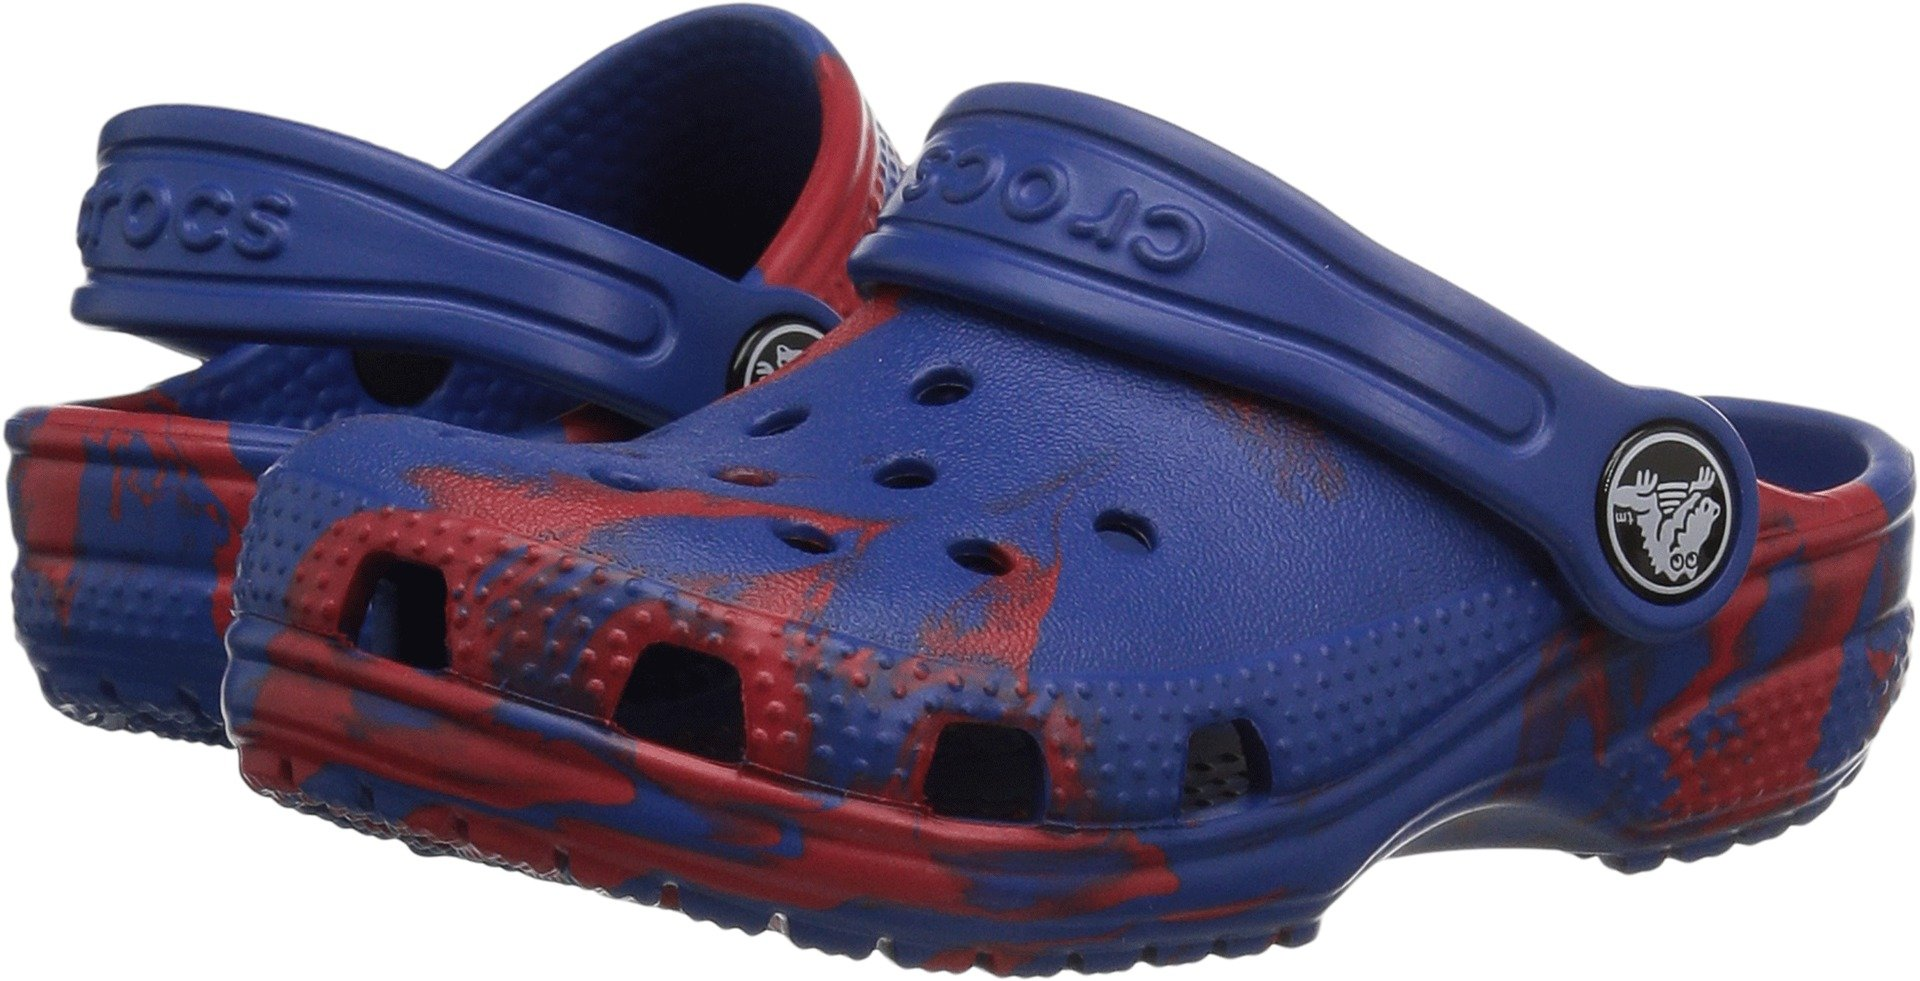 ebfbfd6b8fad7 Galleon - Crocs Kids  Classic Graphic K Clog